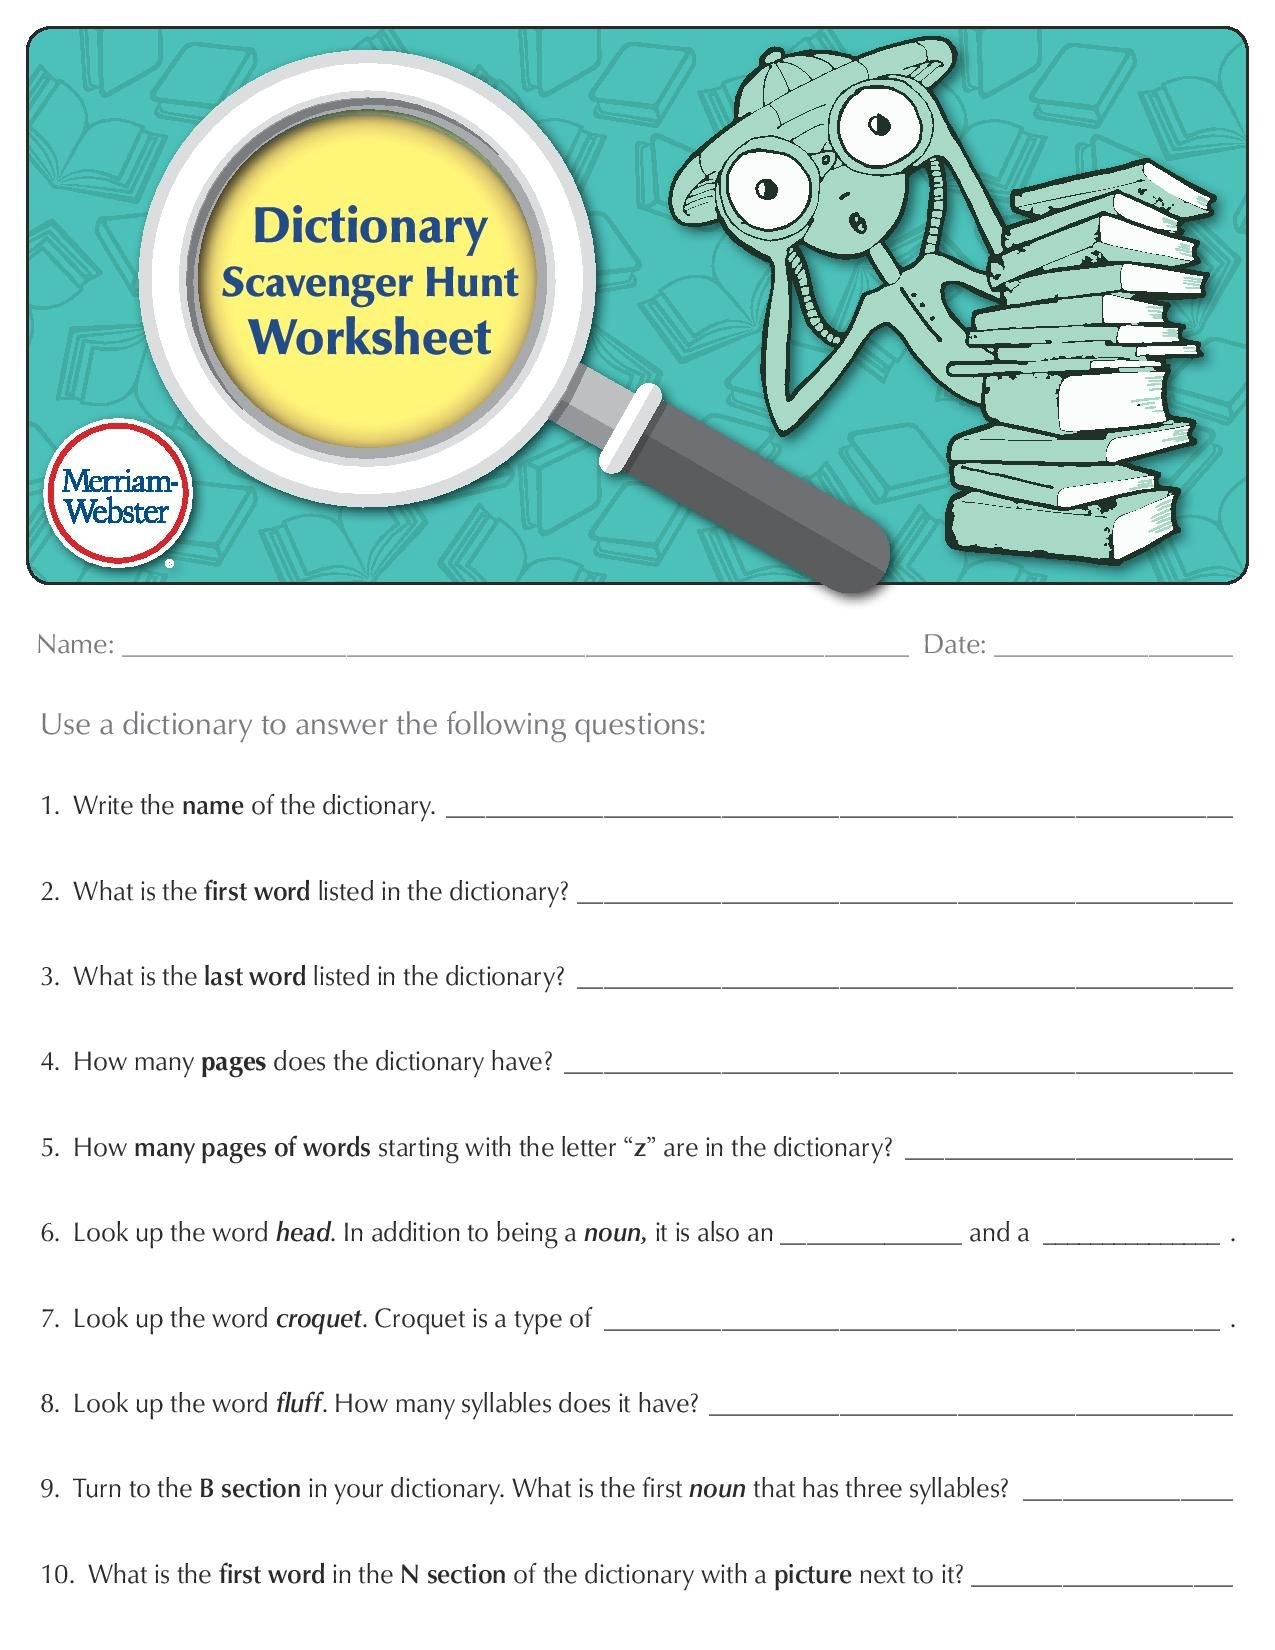 Dictionary Scavenger Hunt Dictionary Activities Scavenger Hunt School Scavenger Hunt [ 1650 x 1275 Pixel ]